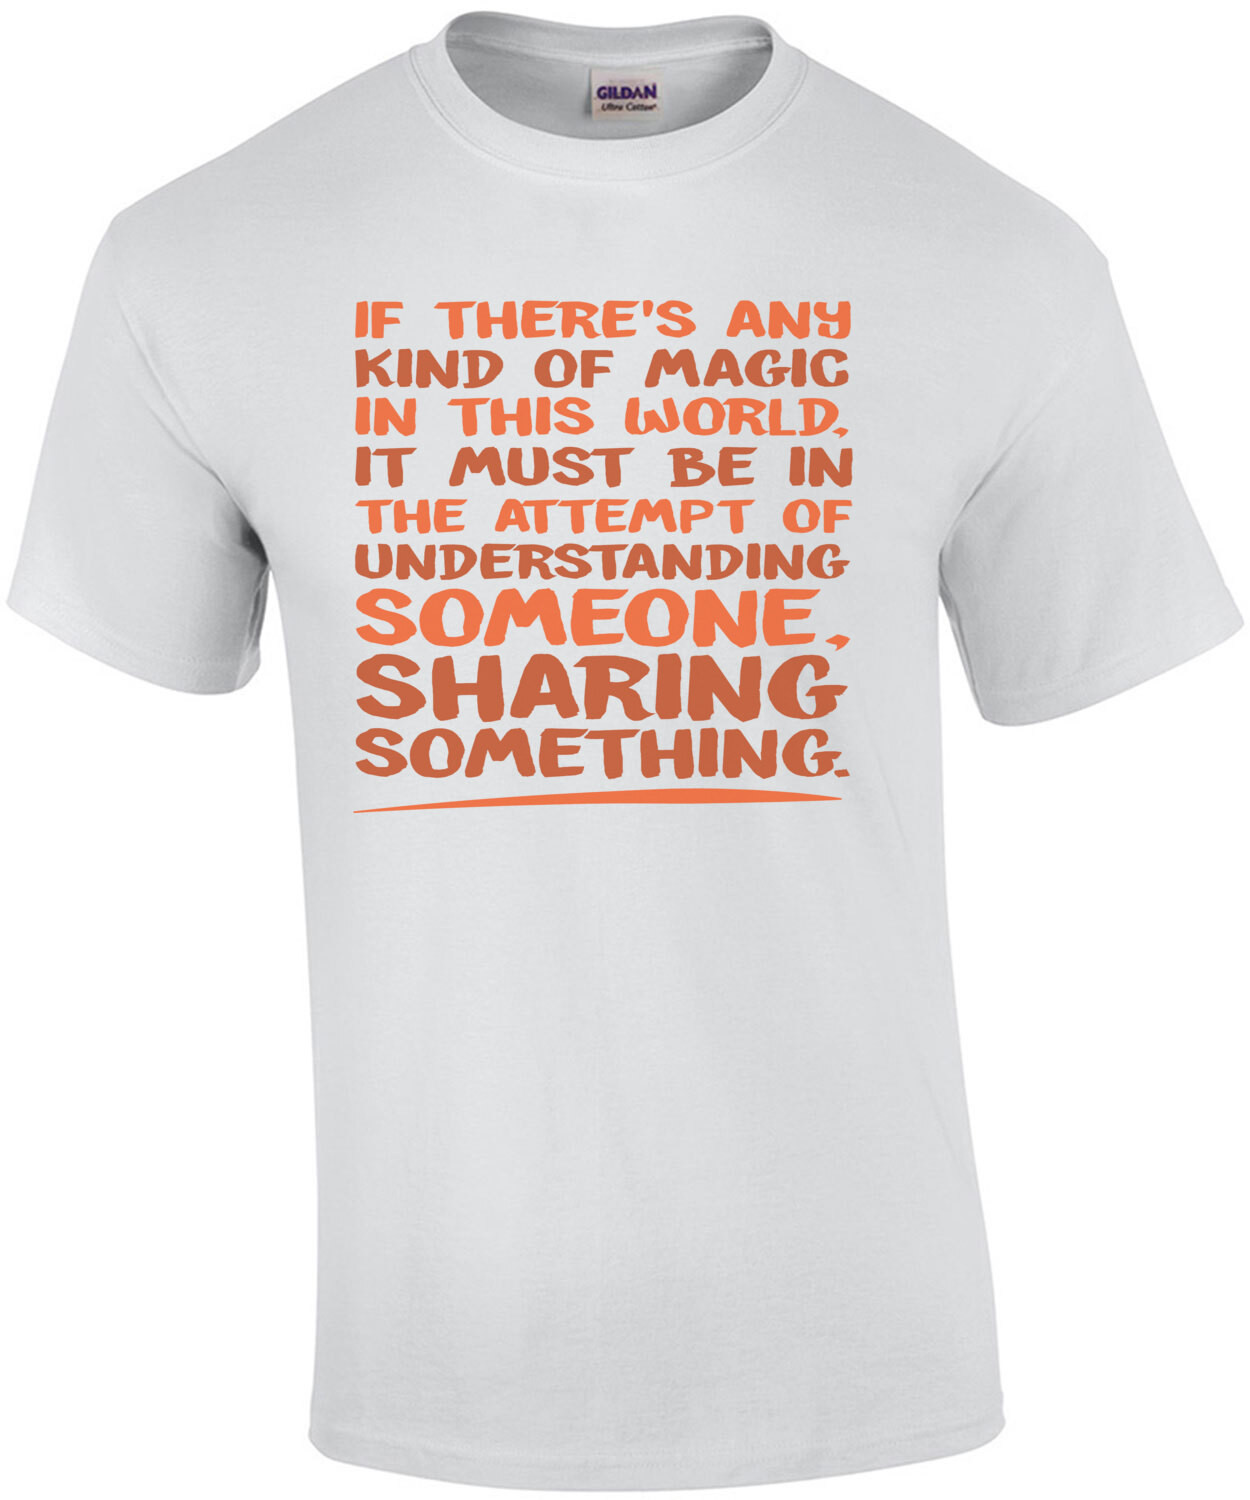 If there's any kind of magic - Before Sunrise - 90's T-Shirt